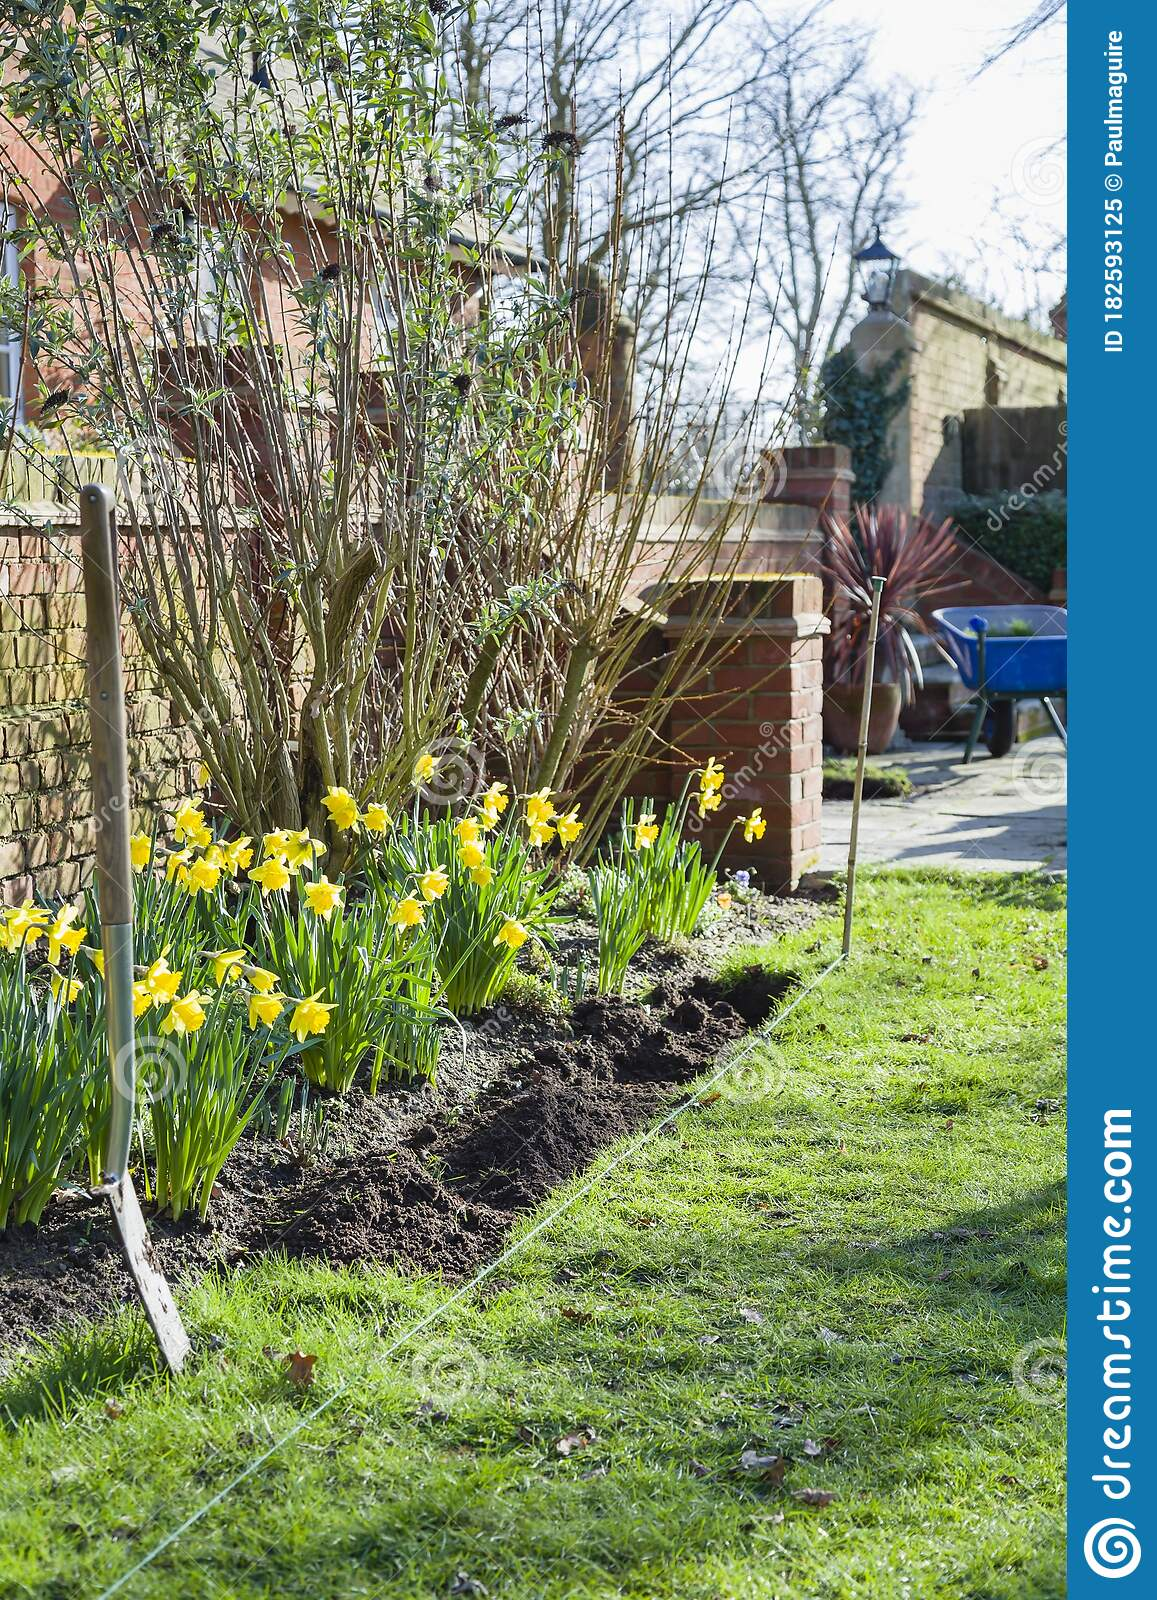 Picture of: Digging A Flower Bed Or Garden Border Gardening In Spring Uk Stock Image Image Of Maintenance Daffodils 182593125